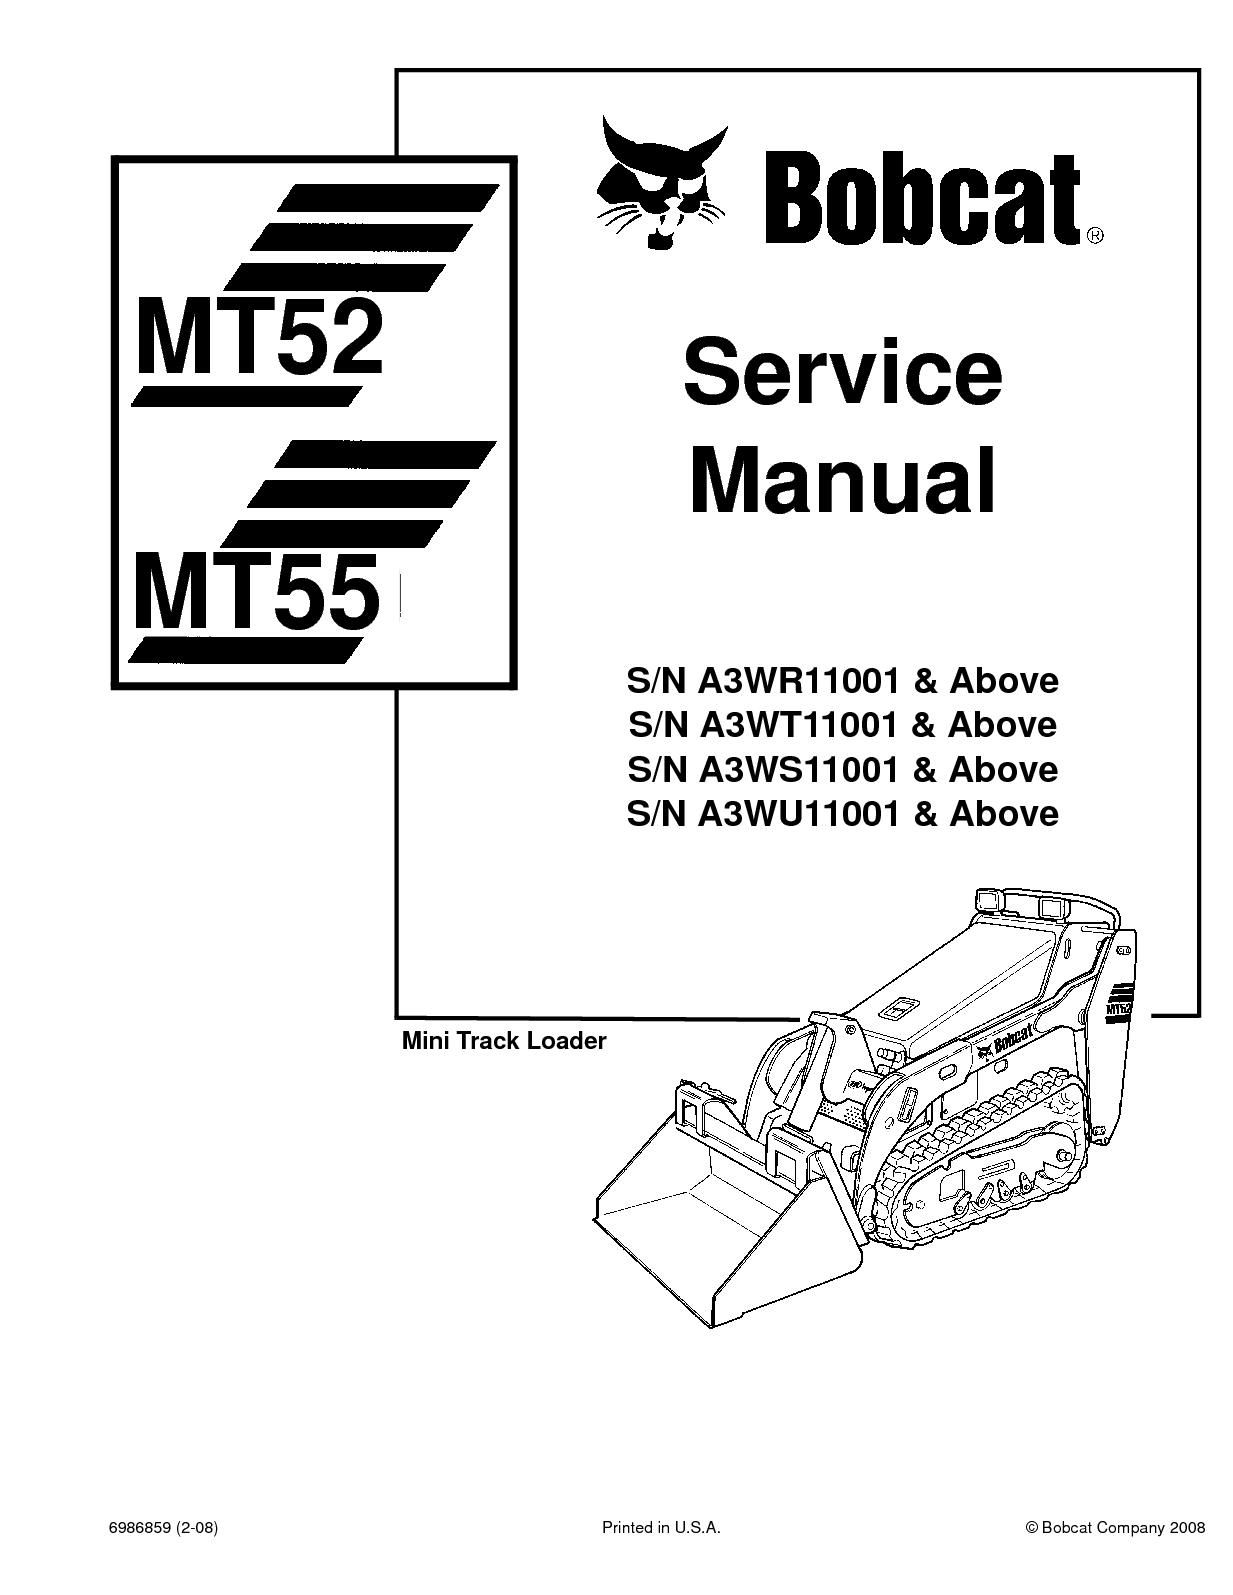 hight resolution of bobcat mt55 compact track loader service repair manual sn a3wr11001 above